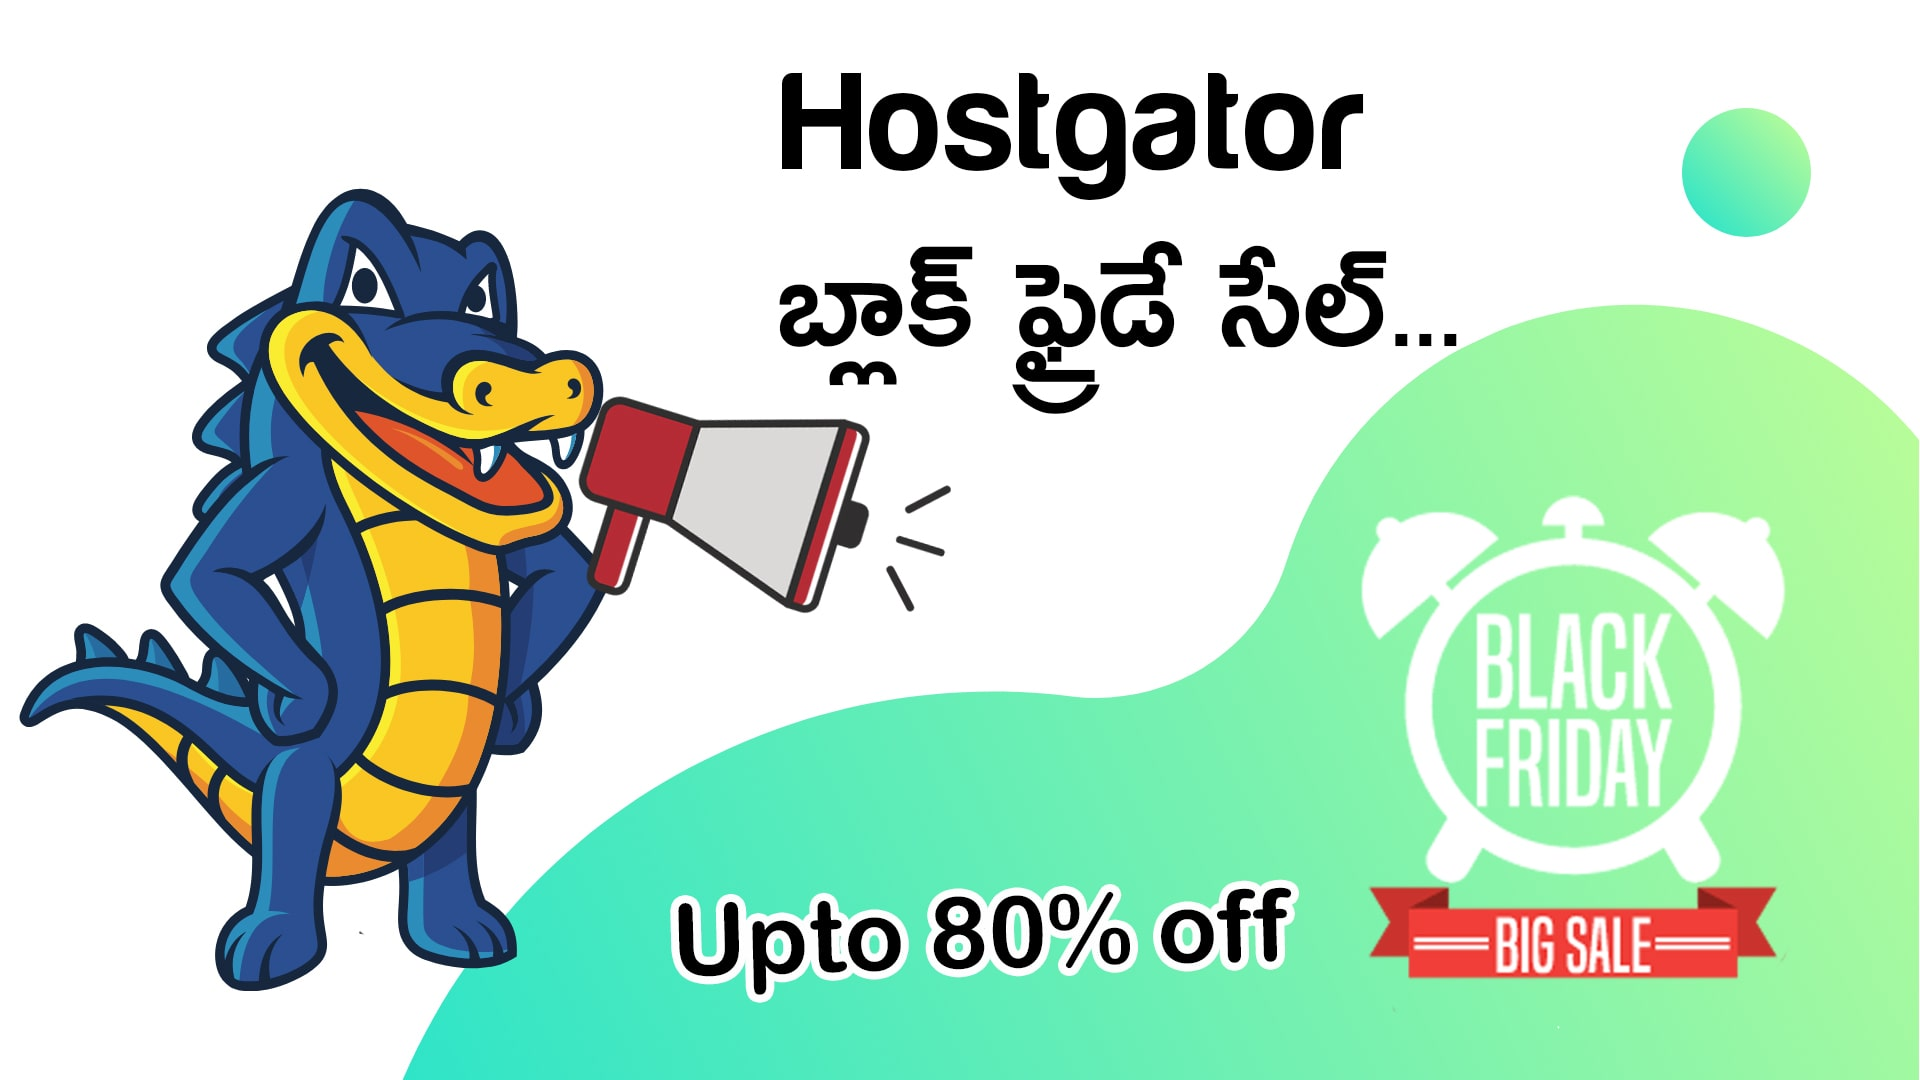 hostgator black friday deals in telugu